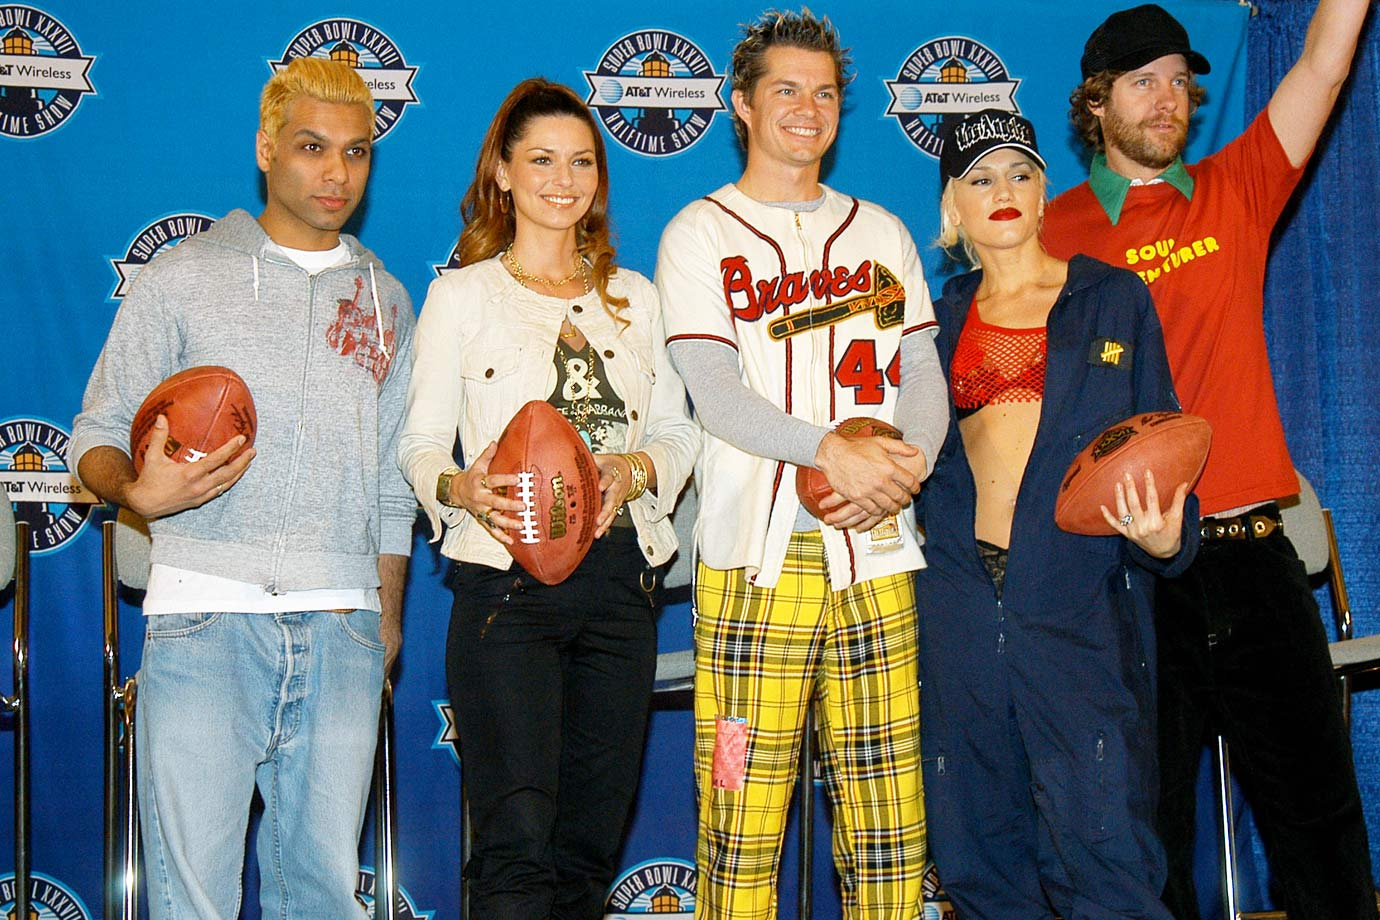 Shania Twain poses with No Doubt to promote the Super Bowl XXXVII Halftime Show on Jan. 23, 2003 in San Diego.